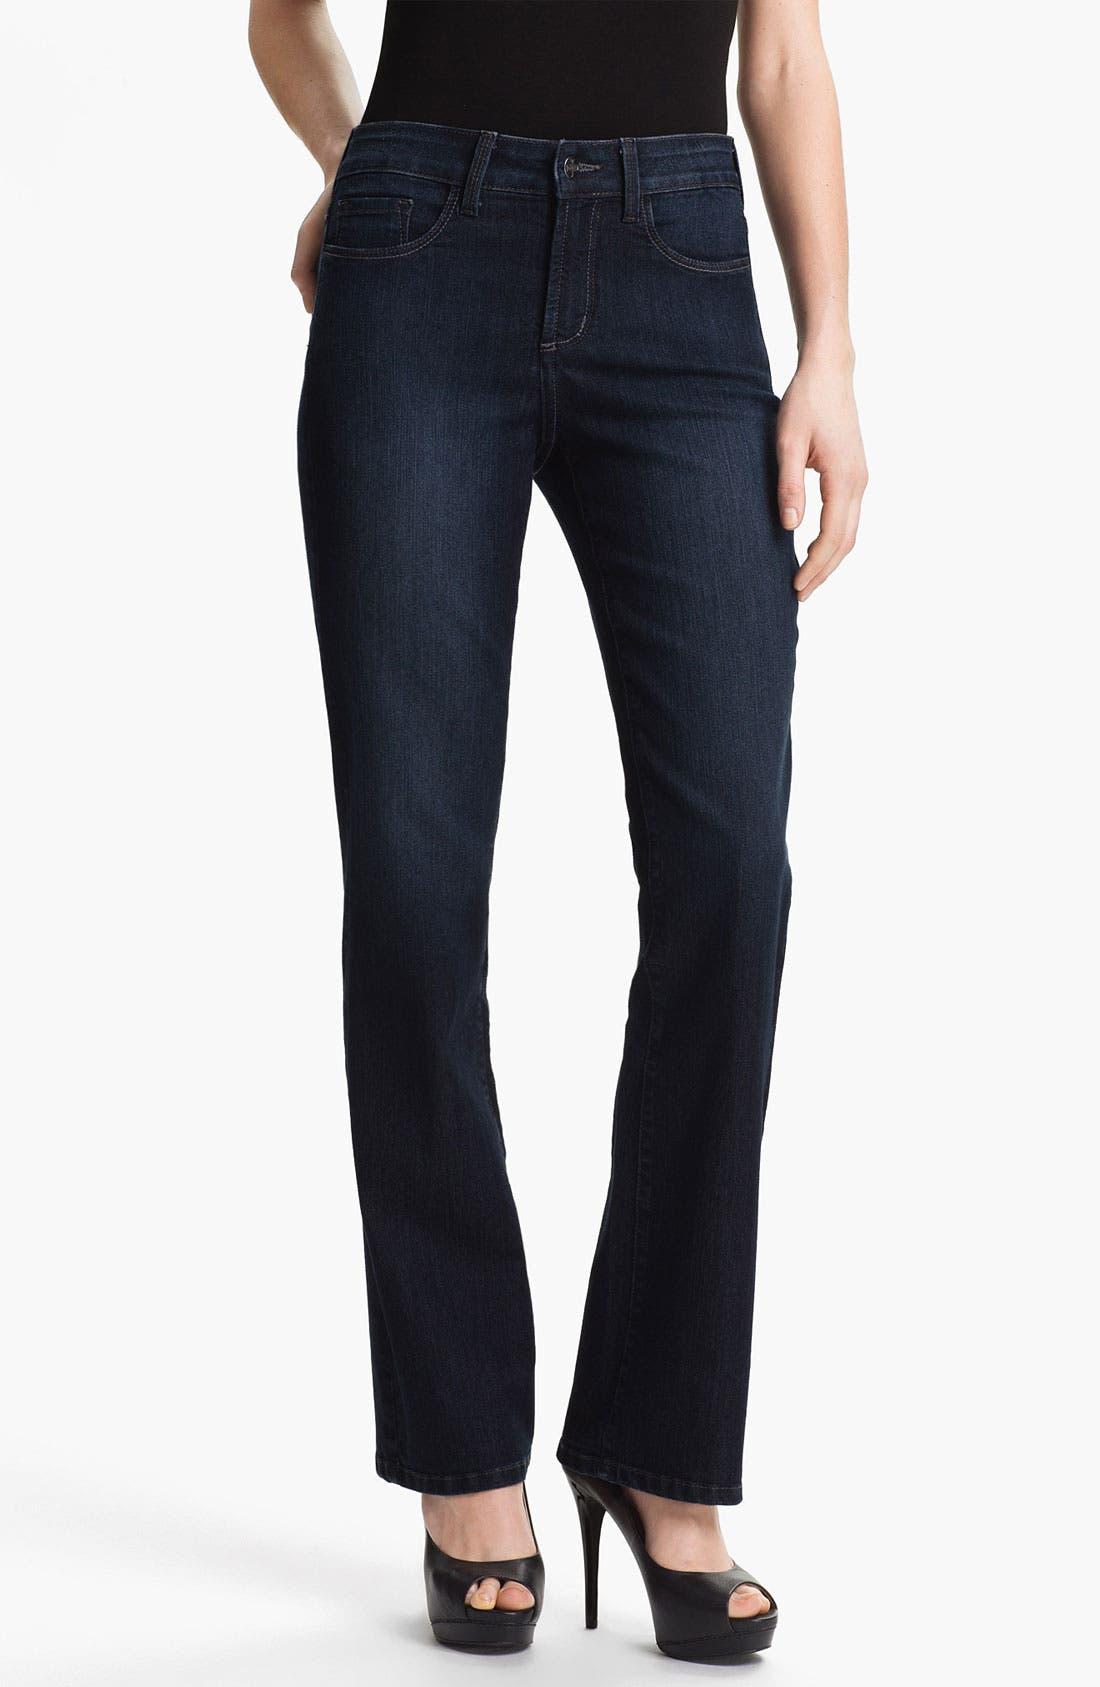 Alternate Image 1 Selected - NYDJ 'Barbara' Embellished Bootcut Jeans (Petite)